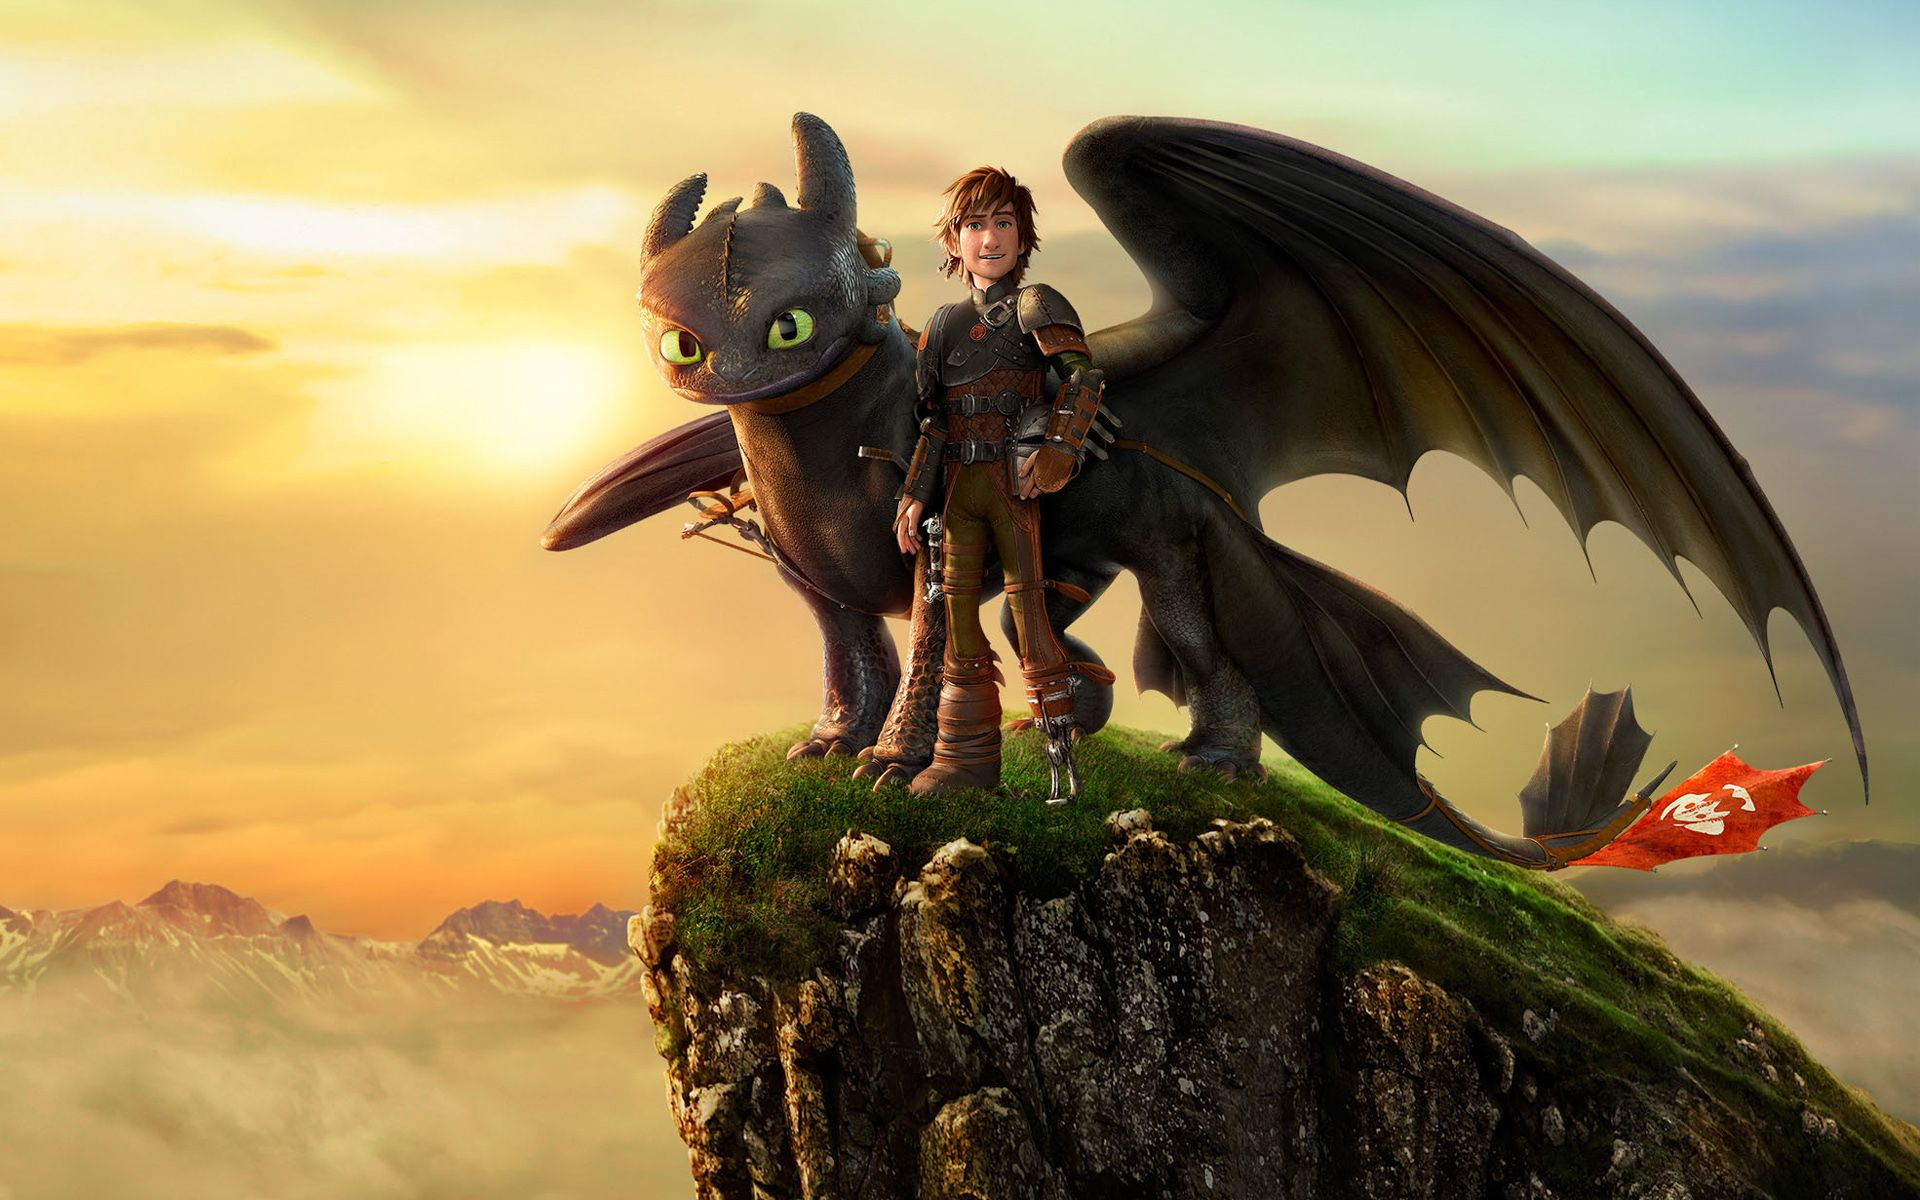 Toothless dragon wallpaper new toothless and hipcup - Toothless wallpaper ...